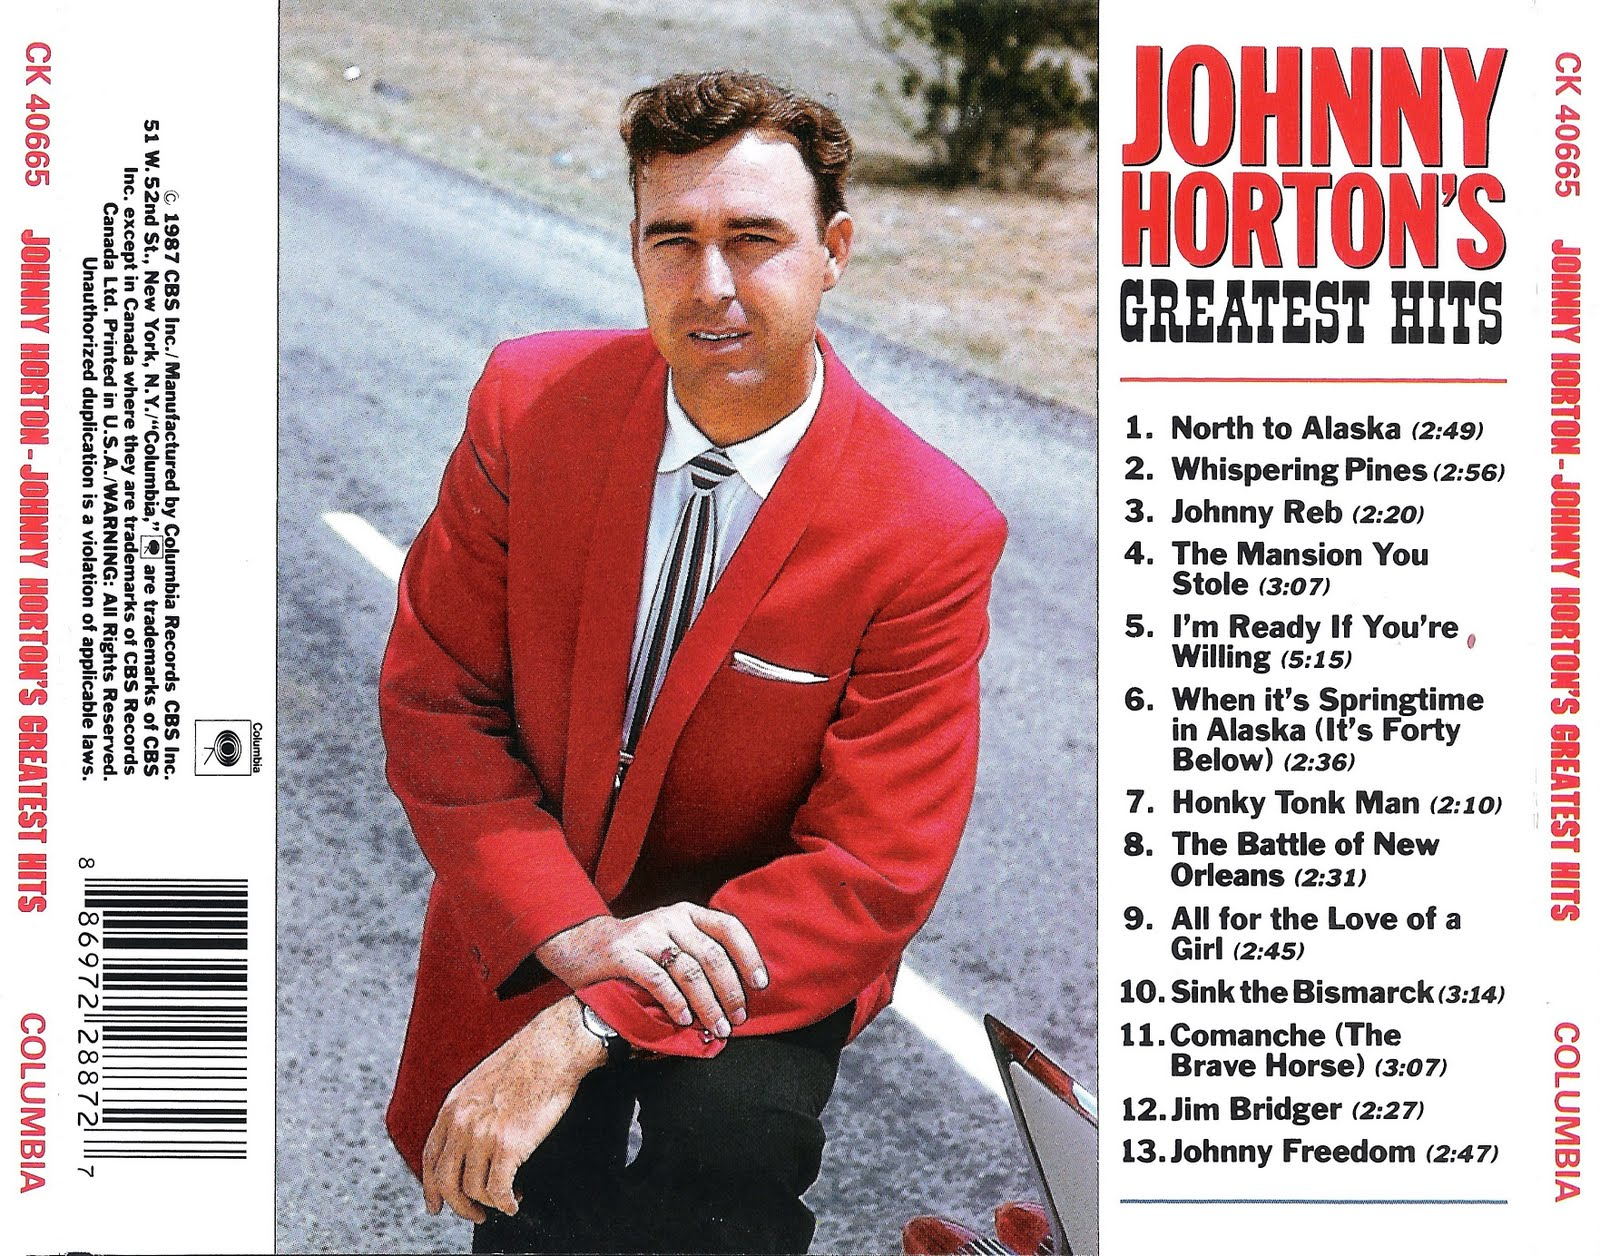 http://1.bp.blogspot.com/-ThZXZX5eTik/Tm1Zo31ABoI/AAAAAAAAB8I/aY9R1qrSezg/s1600/johnny_horton_johnny_hortons_greatest_hits_1990_retail_cd-back.jpg